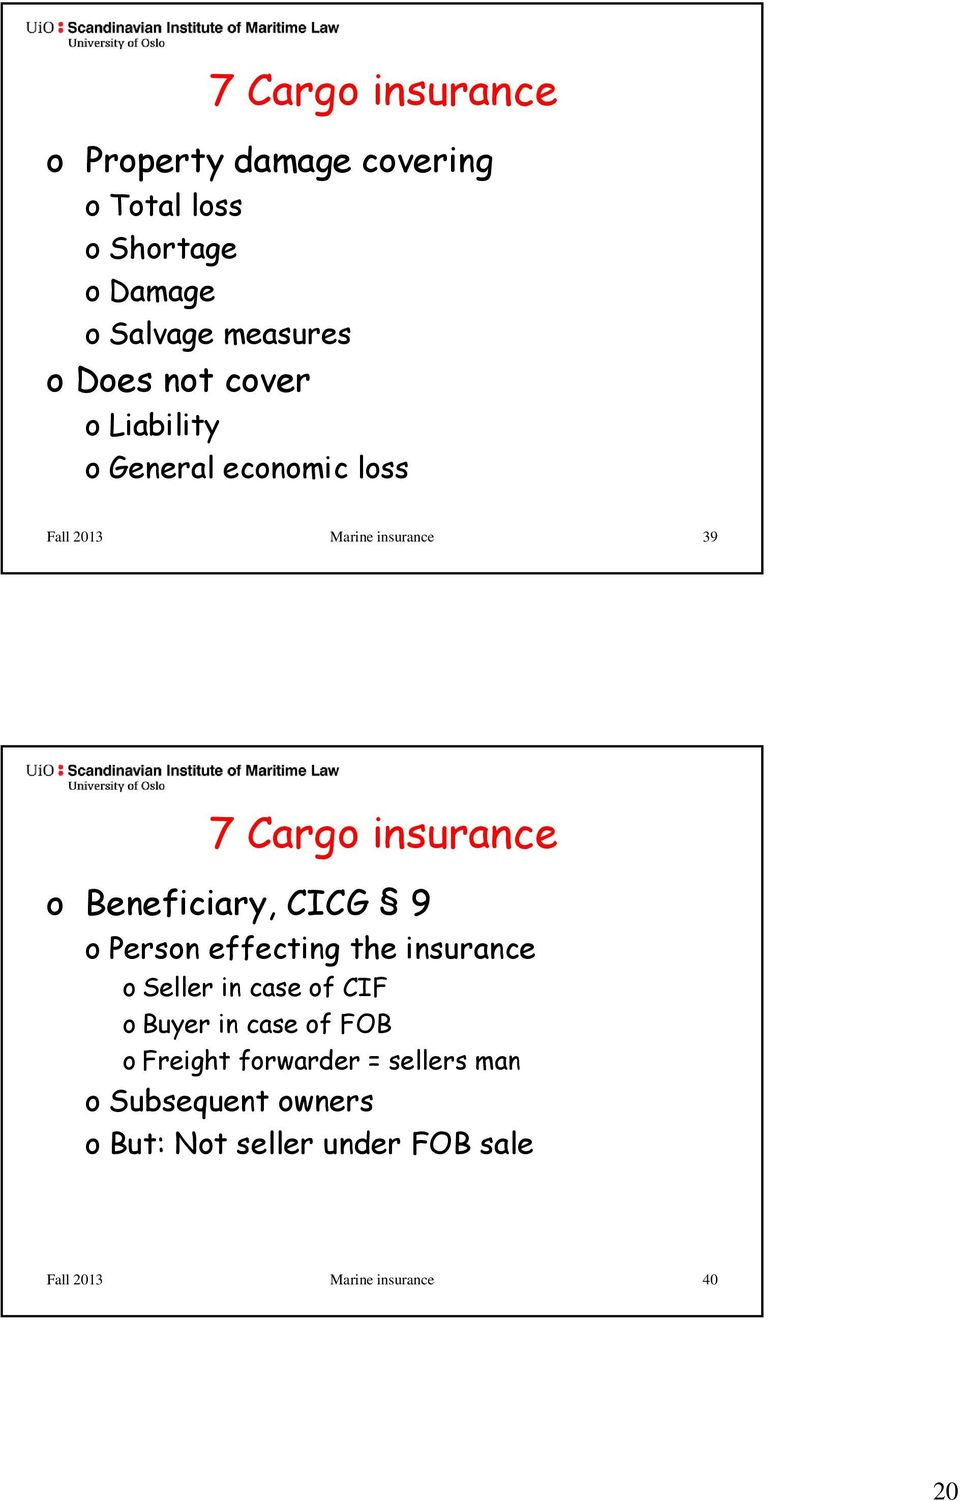 Beneficiary, CICG 9 o Person effecting the insurance o Seller in case of CIF o Buyer in case of FOB o